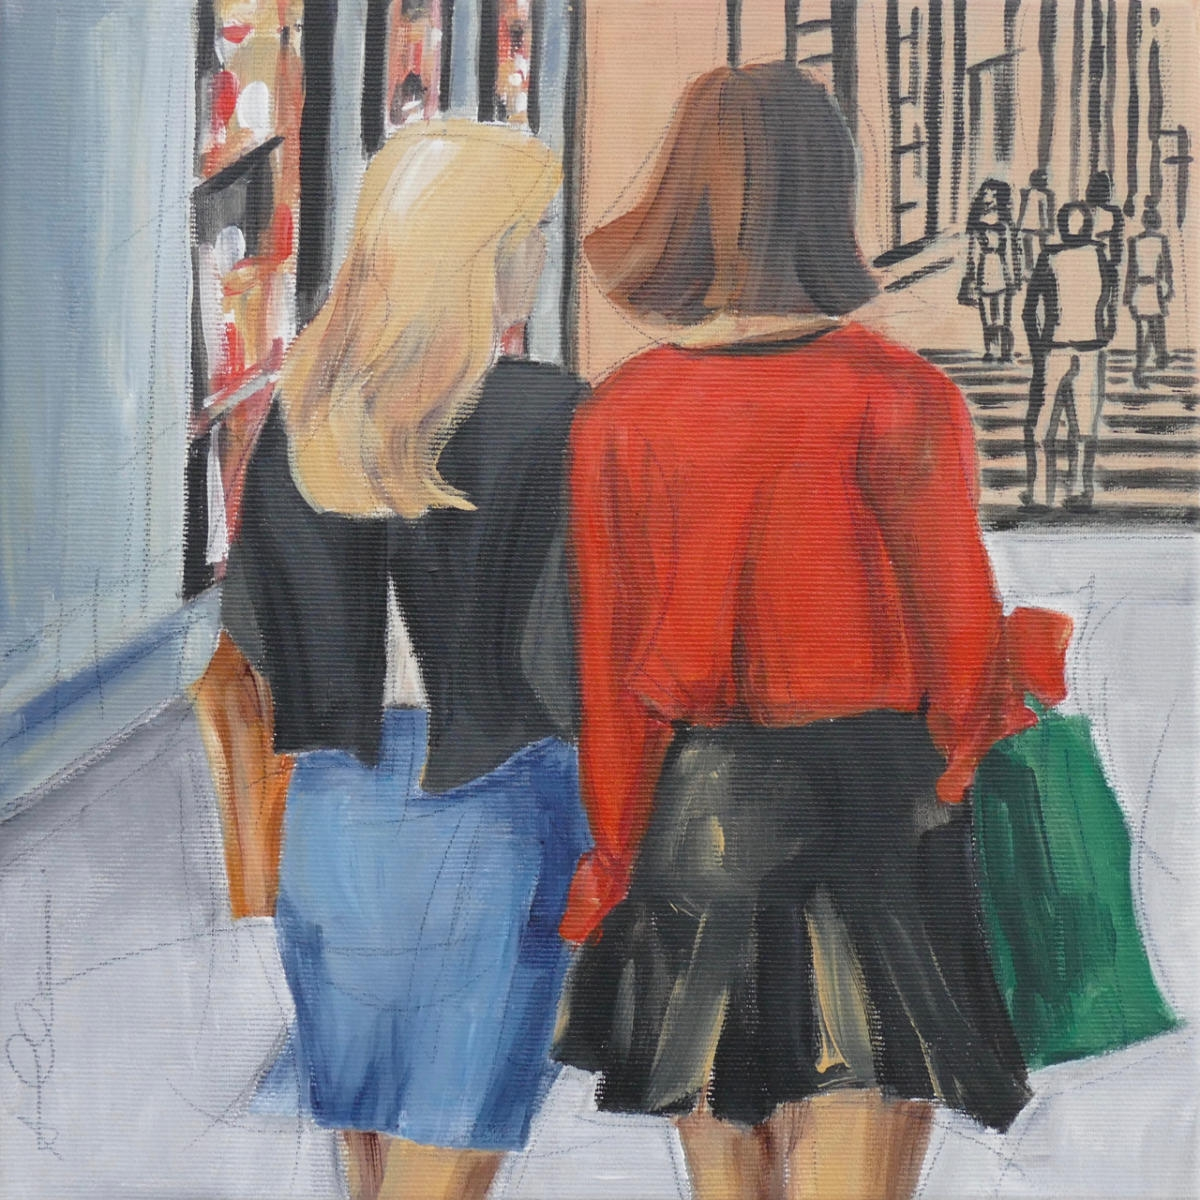 Shoppingtour III 30x30cm